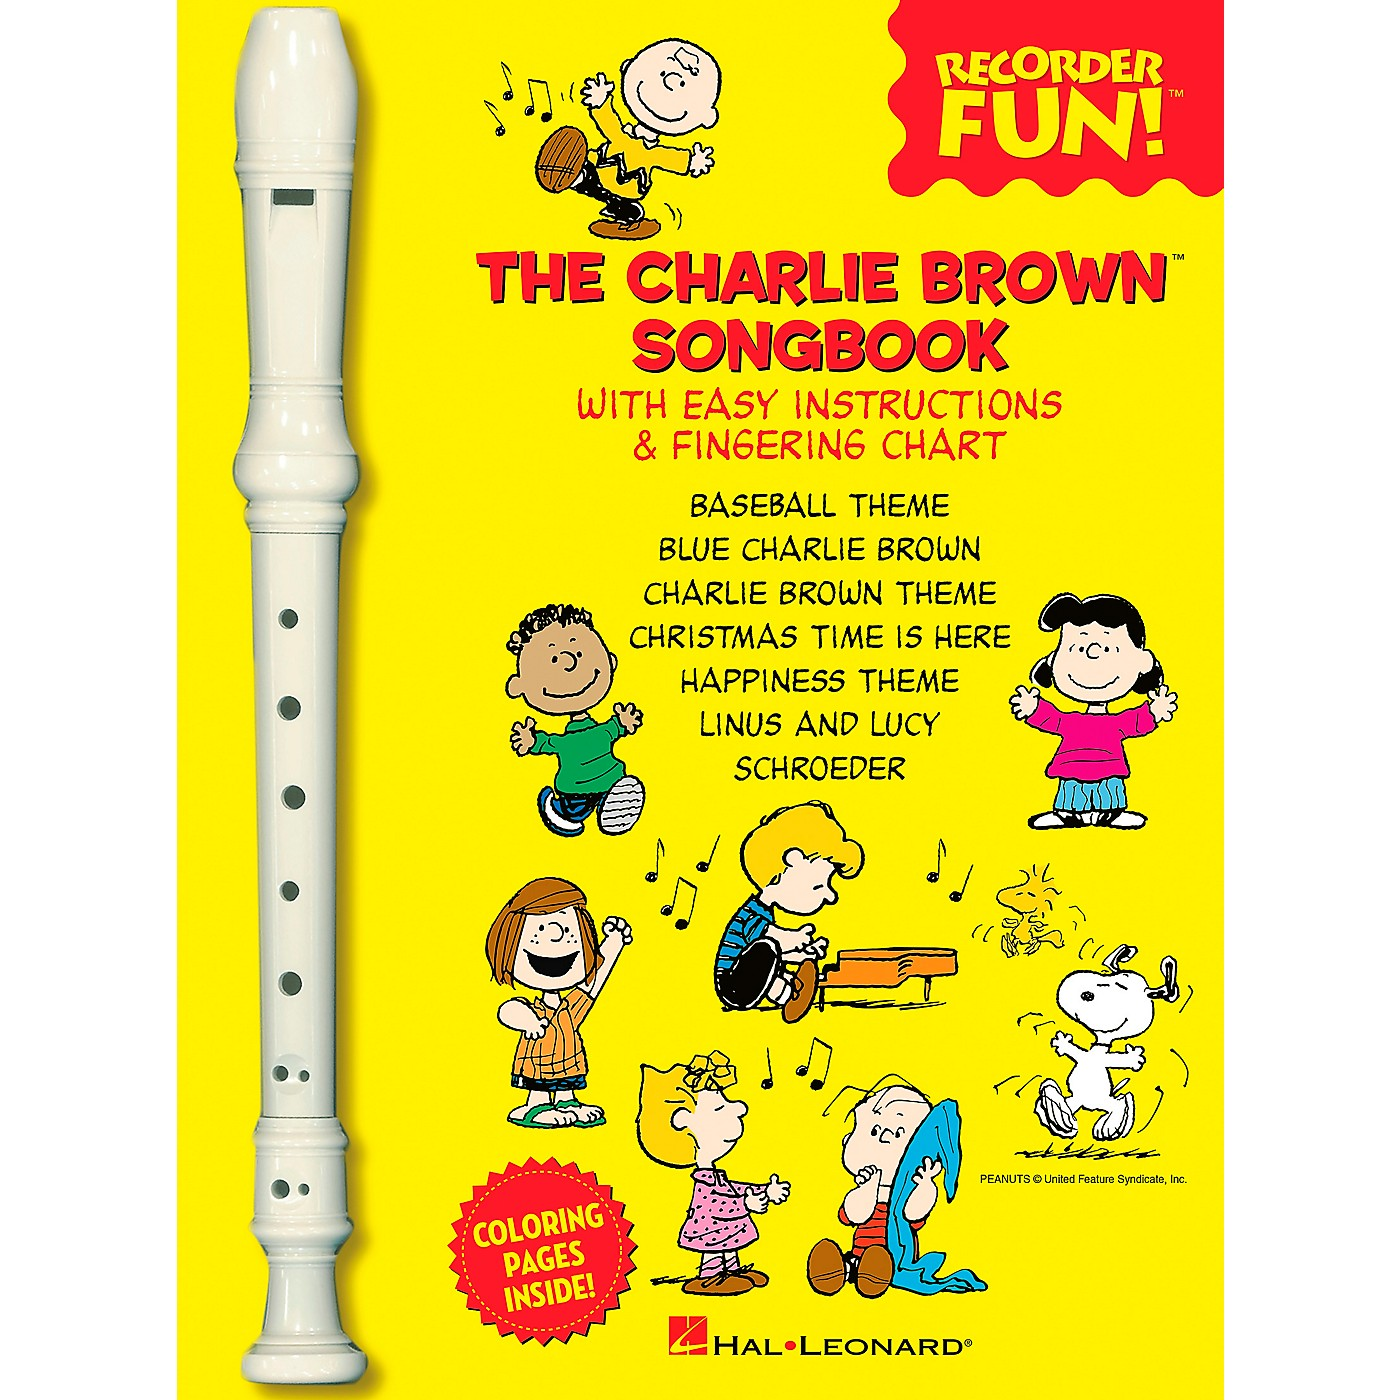 Hal Leonard The Charlie Brown Songbook - Recorder Fun Book/Recorder Pack thumbnail